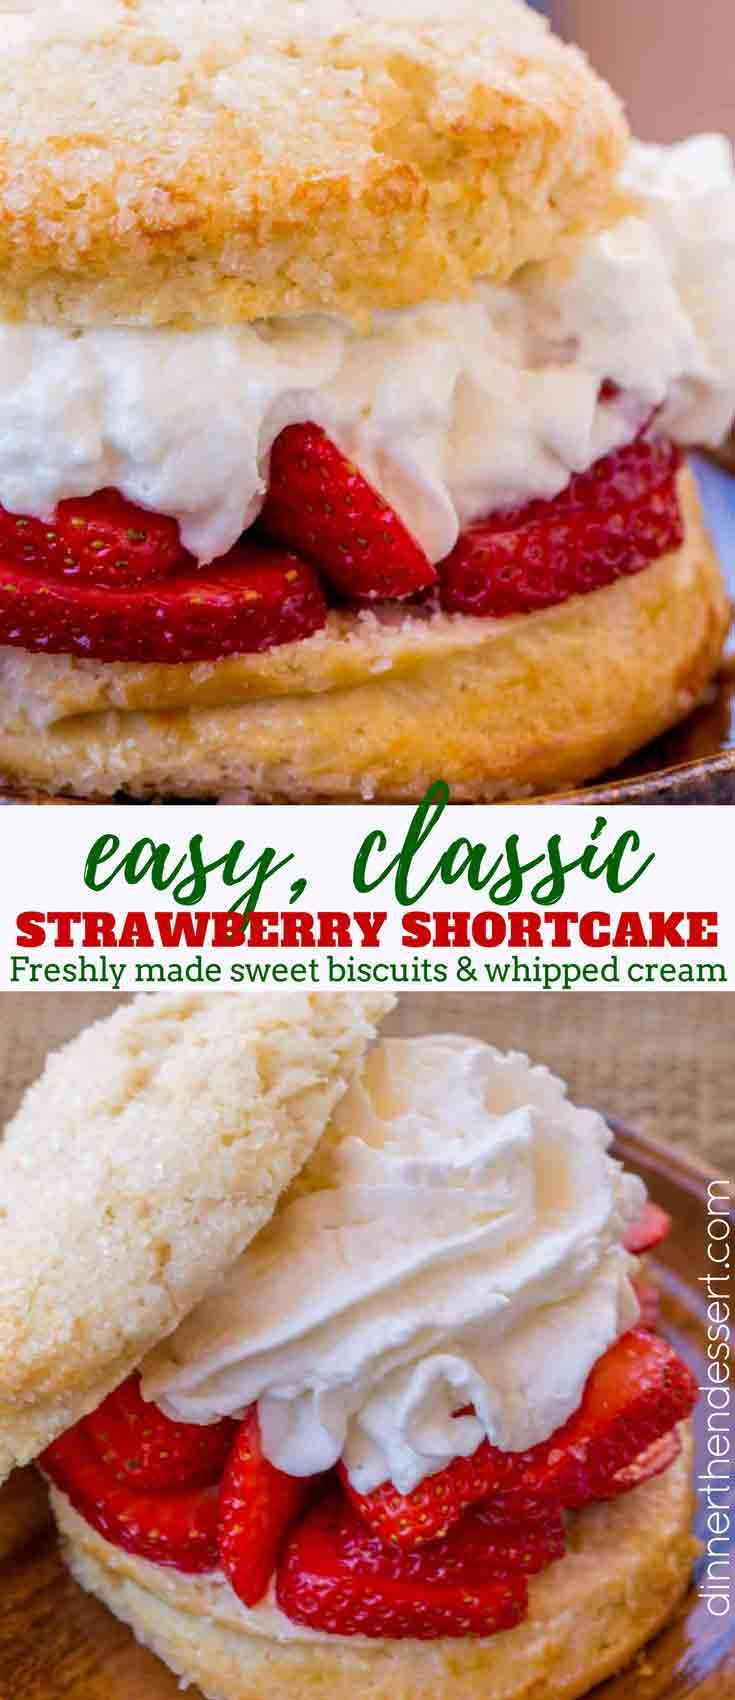 Easy Strawberry Shortcakes with freshly made sweetened biscuits, homemade whipped cream and lightly sweetened strawberries in less than an hour.